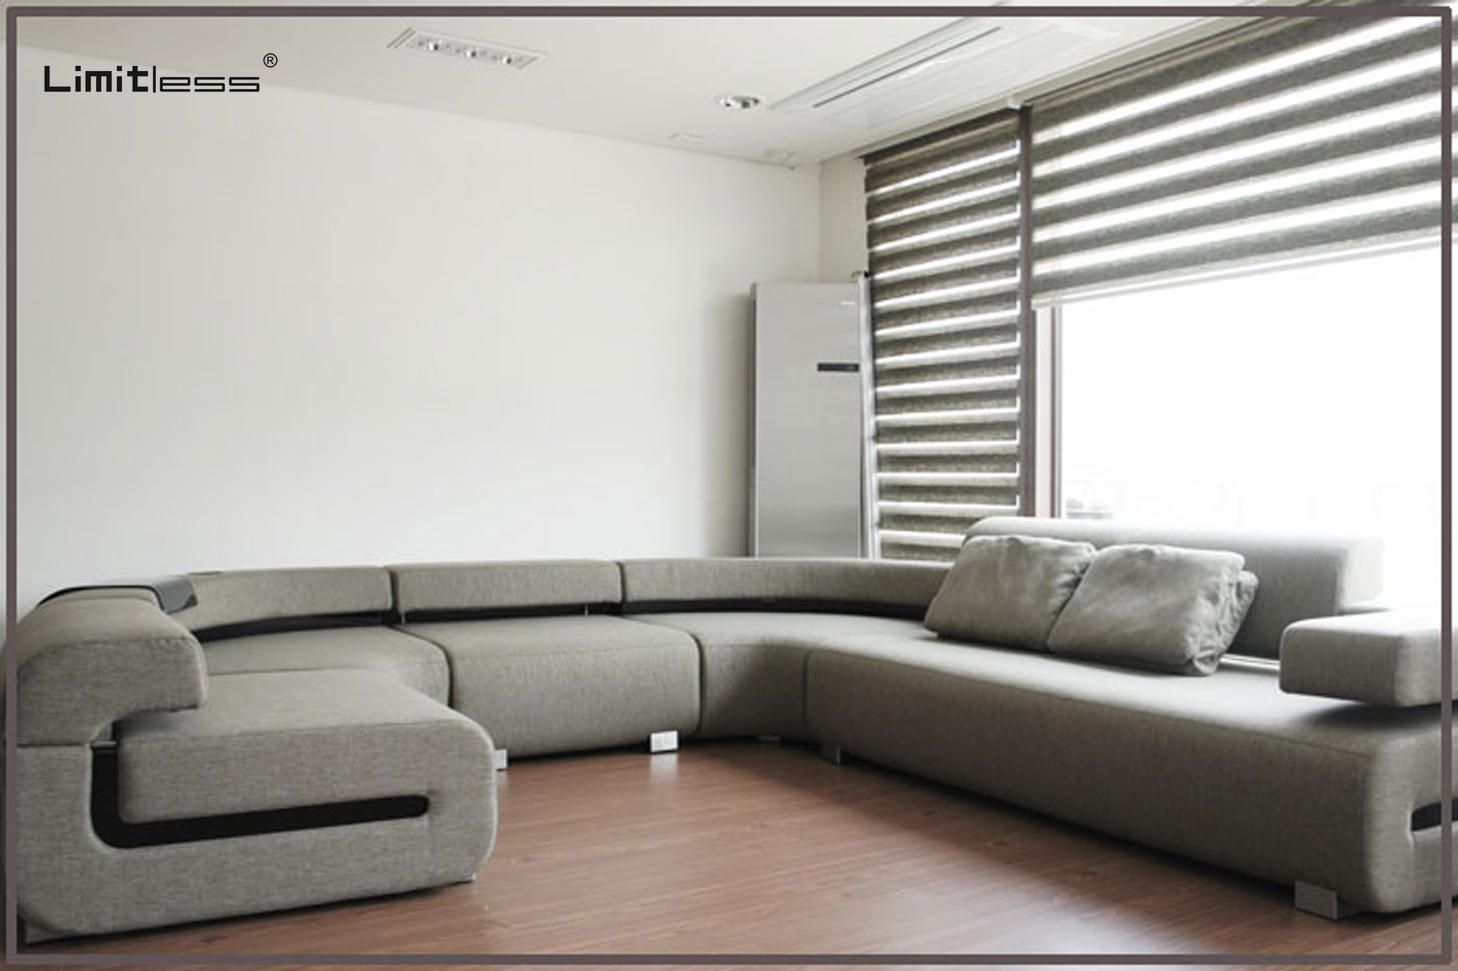 """Our clients a very modern life and good design should reflect the way the client live their own modern life.    The Living Room was designed using simple forms with irrepressible geometric allure, flaunting the figure without the flash. With the utmost freedom of form, Limitless showcases their dexterity for fashioning bold minimalist multi textured furnishings in the """"G"""" sectional."""